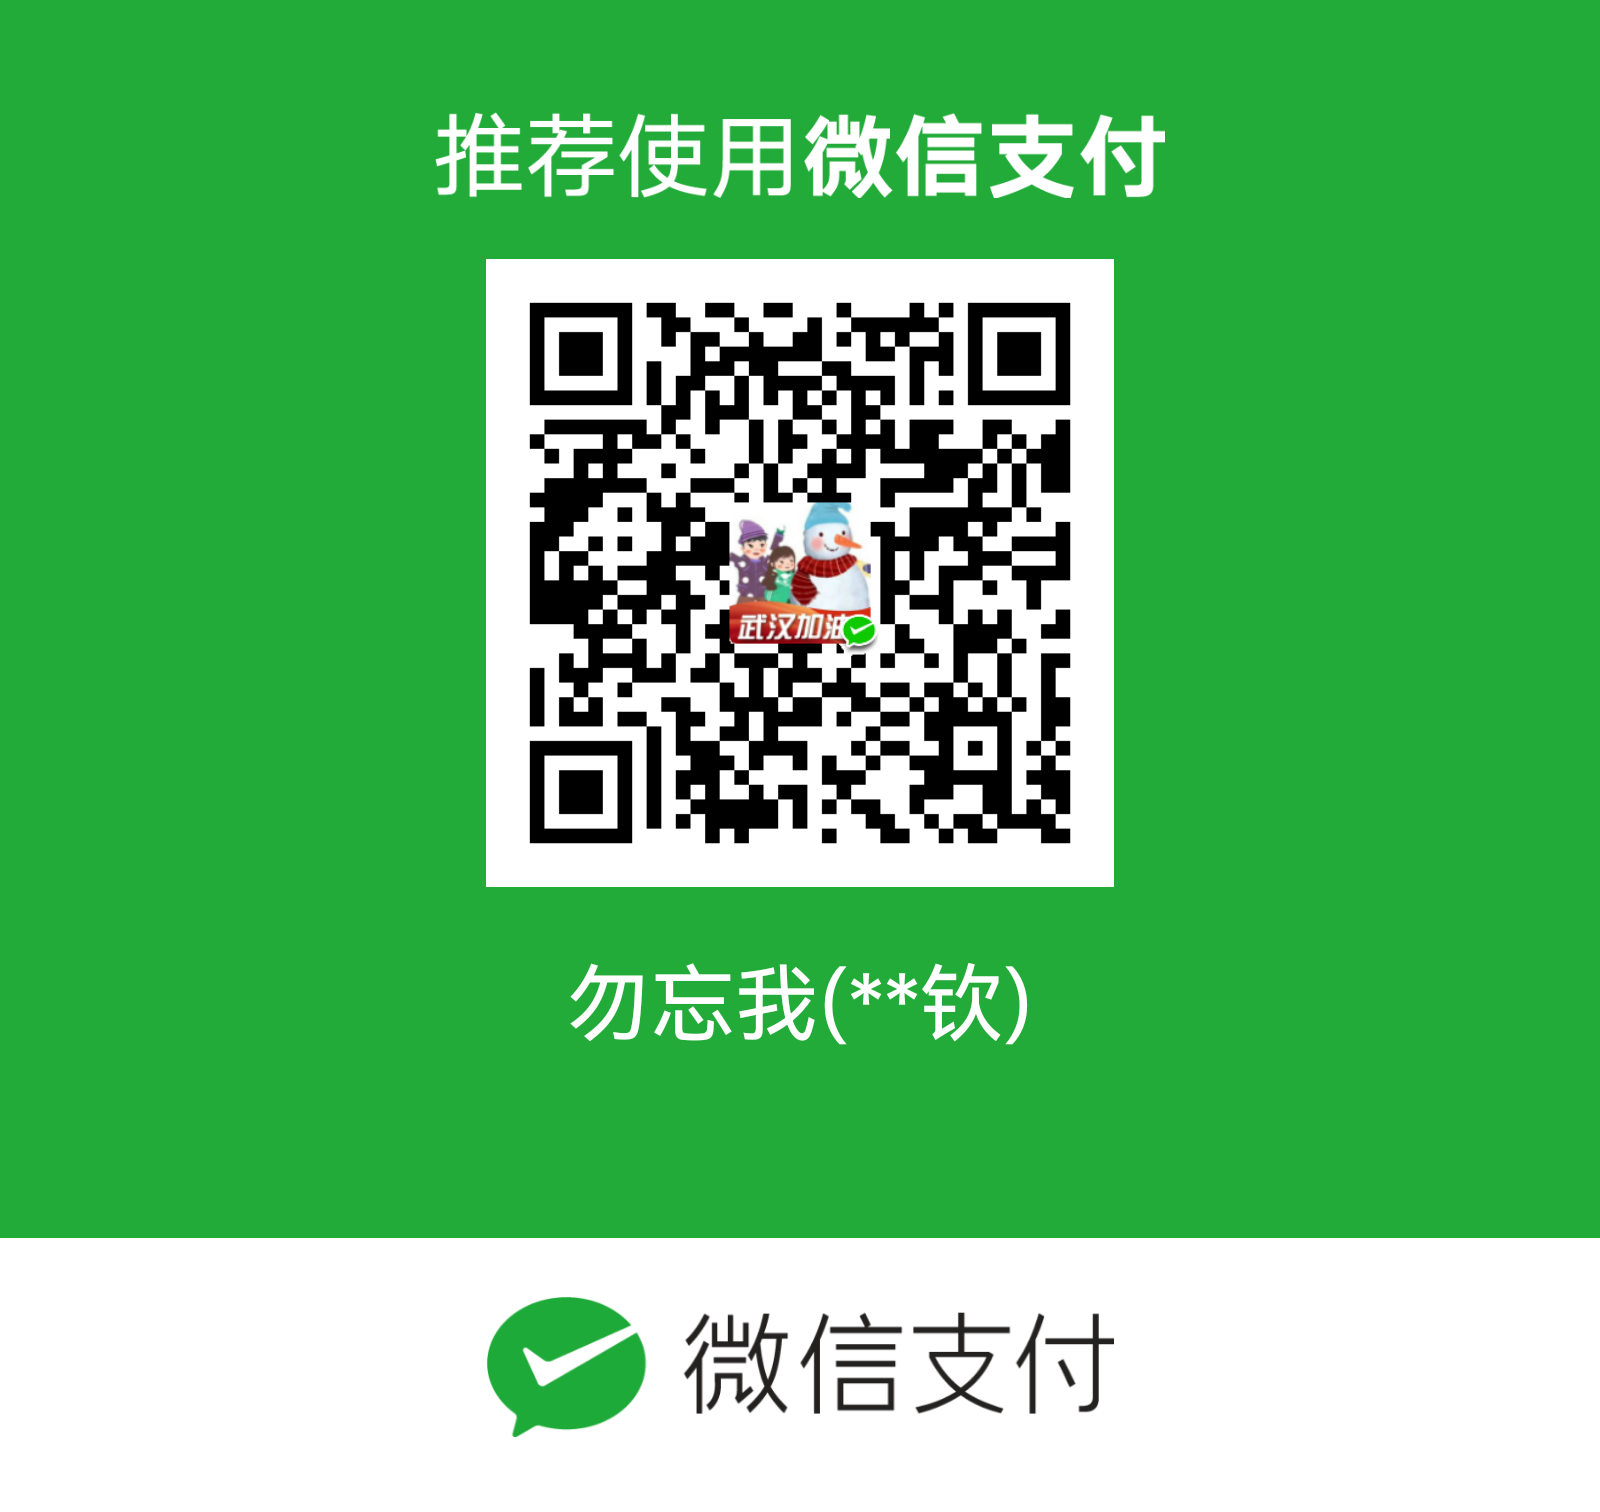 mm_facetoface_collect_qrcode_1626526778877.png